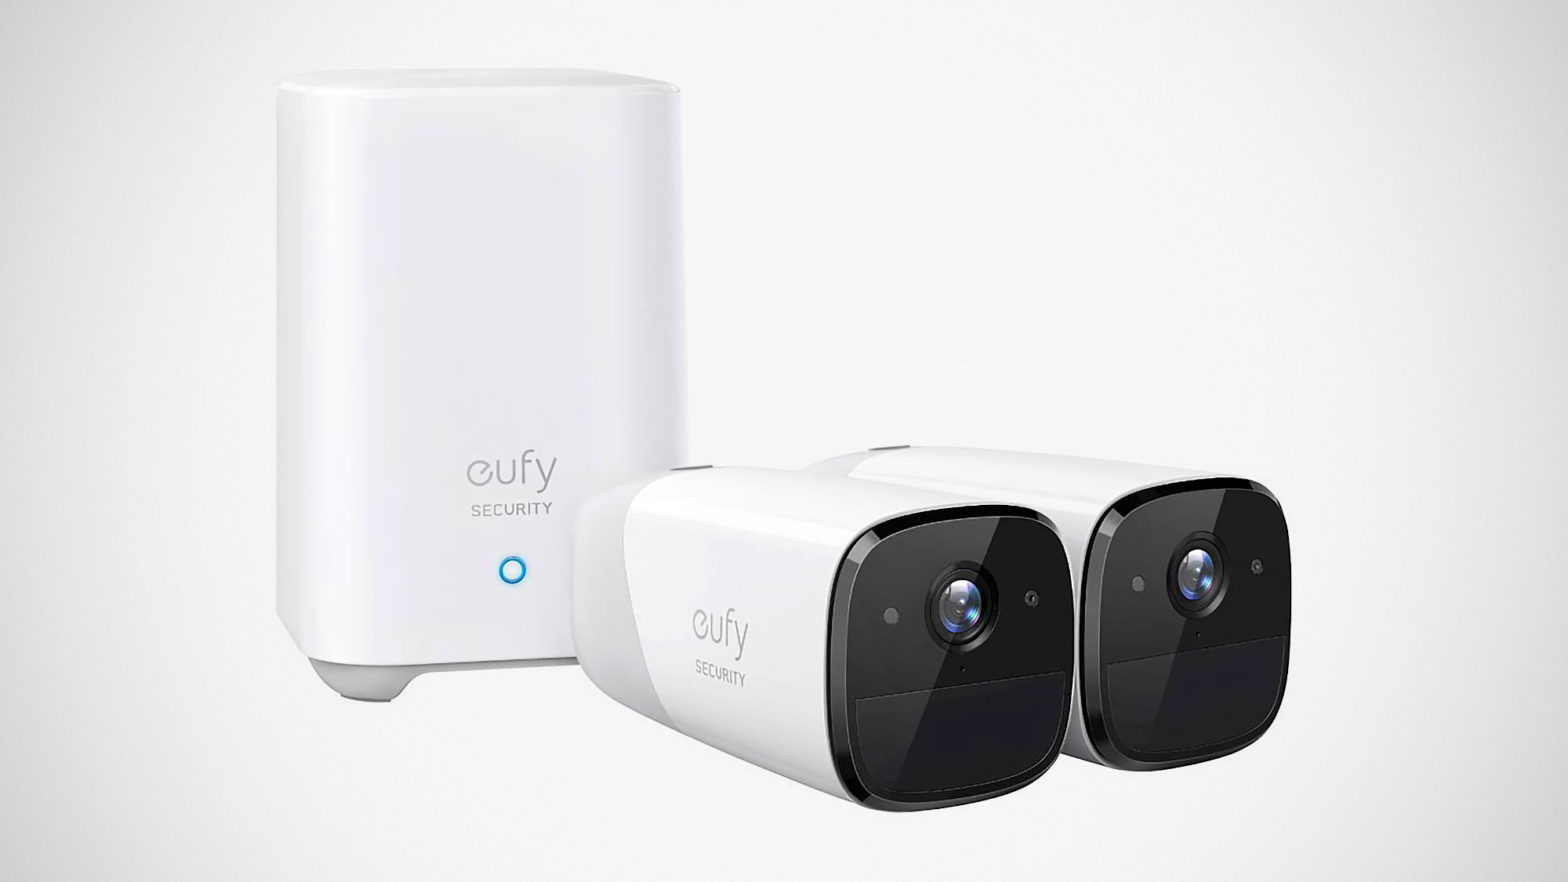 eufyCam 2 Home Security Camera